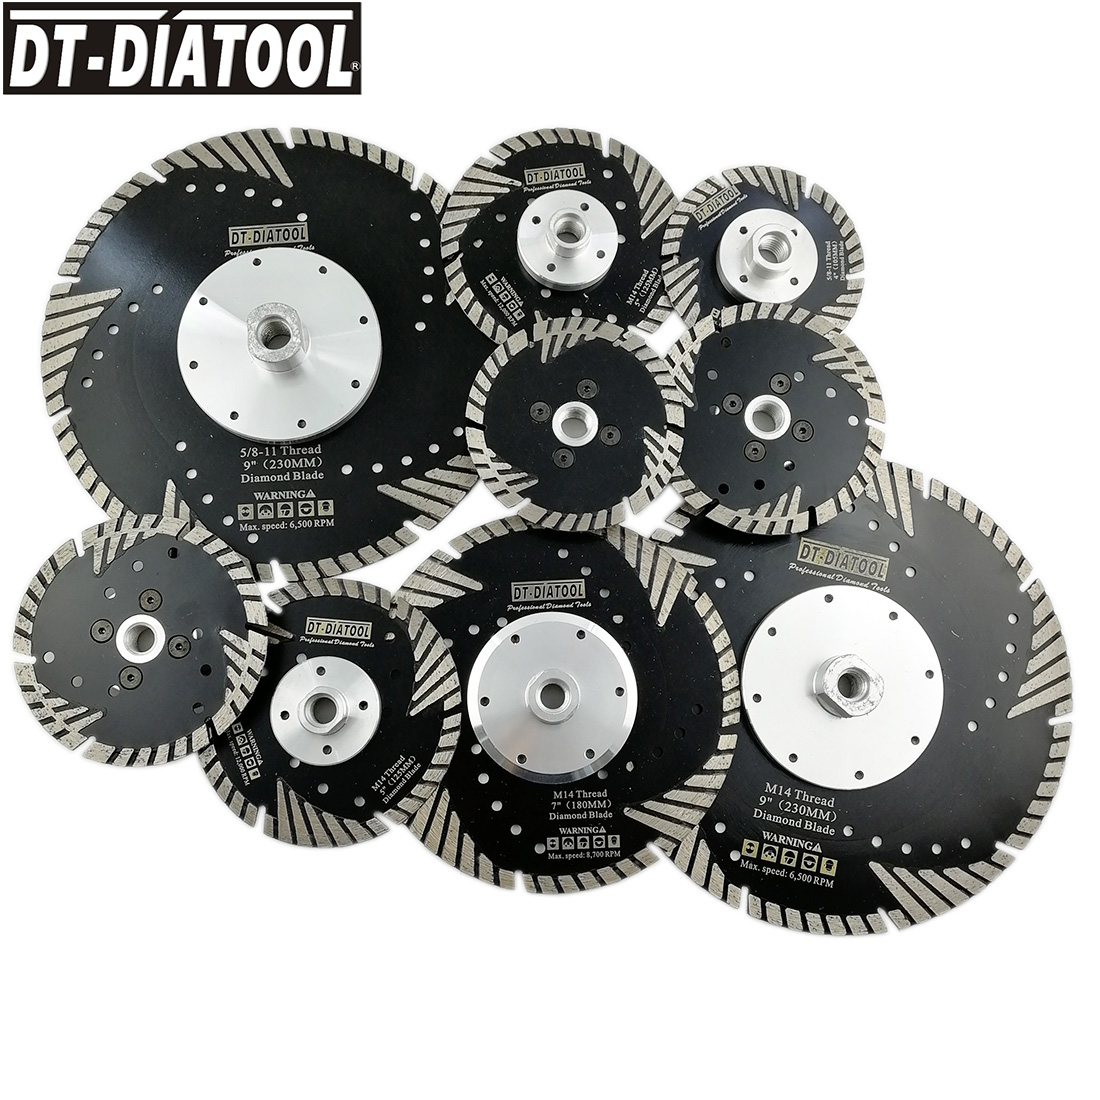 1pc Diamond Turbo Saw Blade With Slant Protection Teeth Cutting Disc Cutting Wheel For Marble Granite Concrete Stone  Dia 4